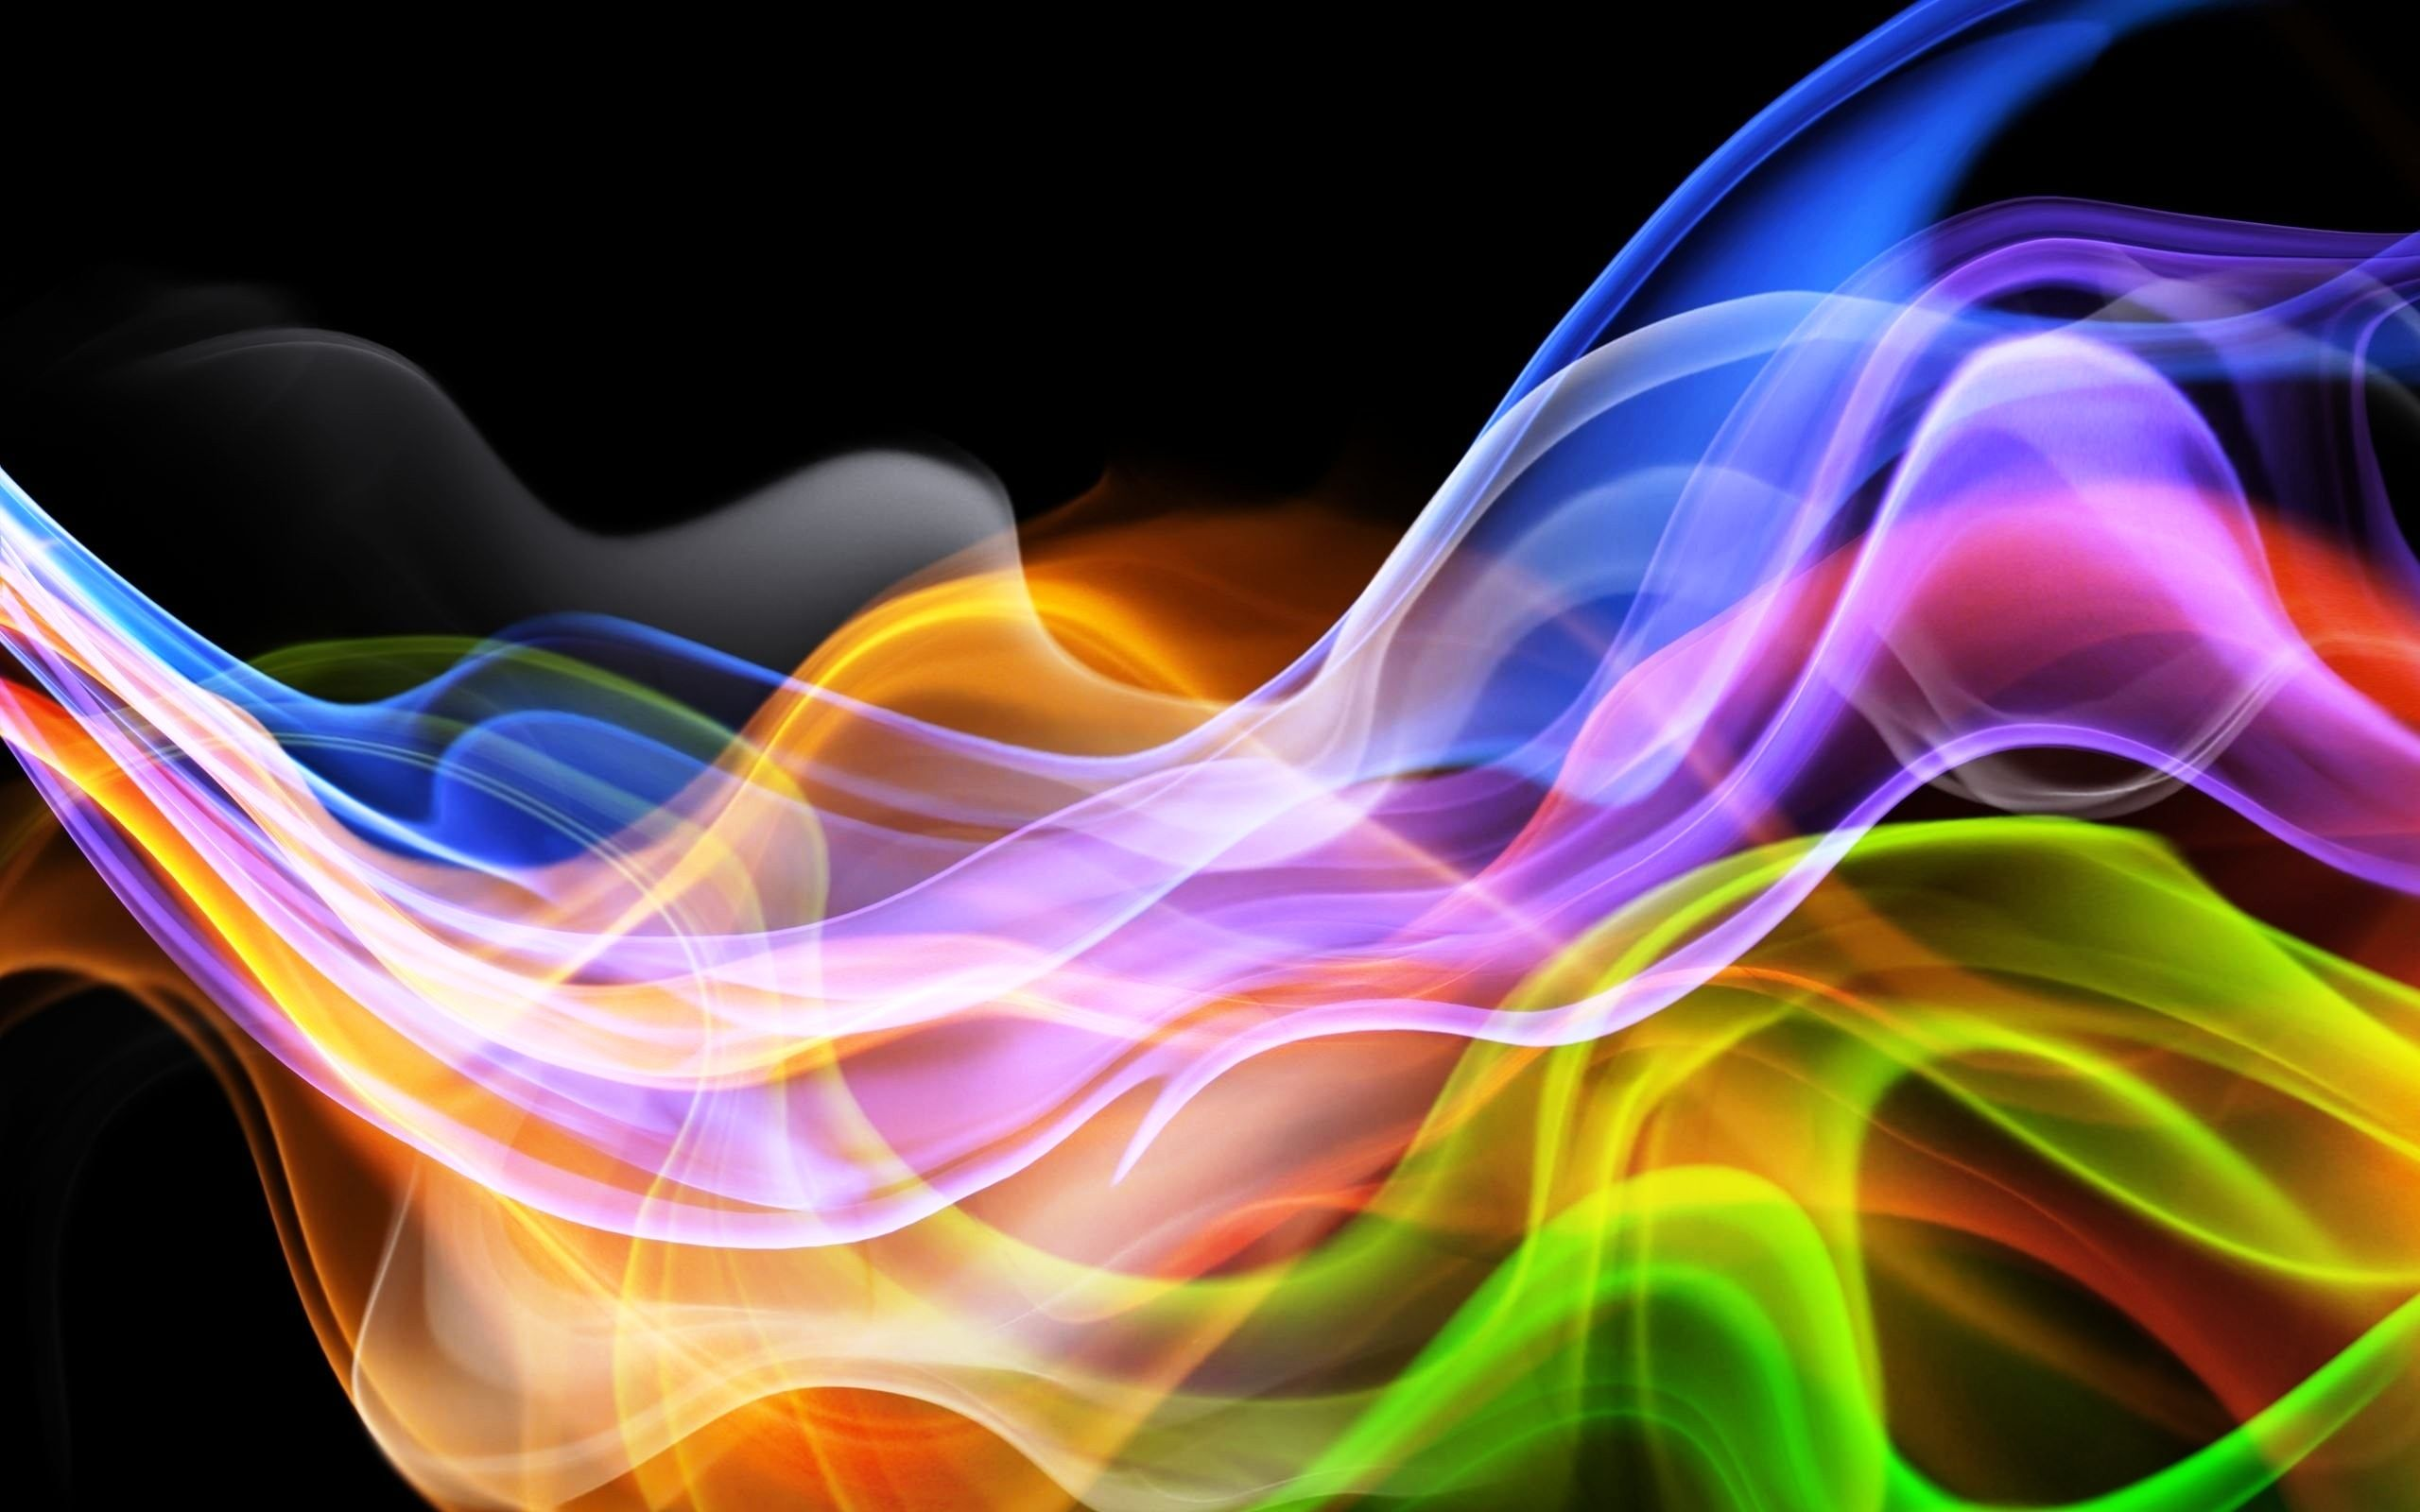 rainbow smoke wallpapers r - photo #24